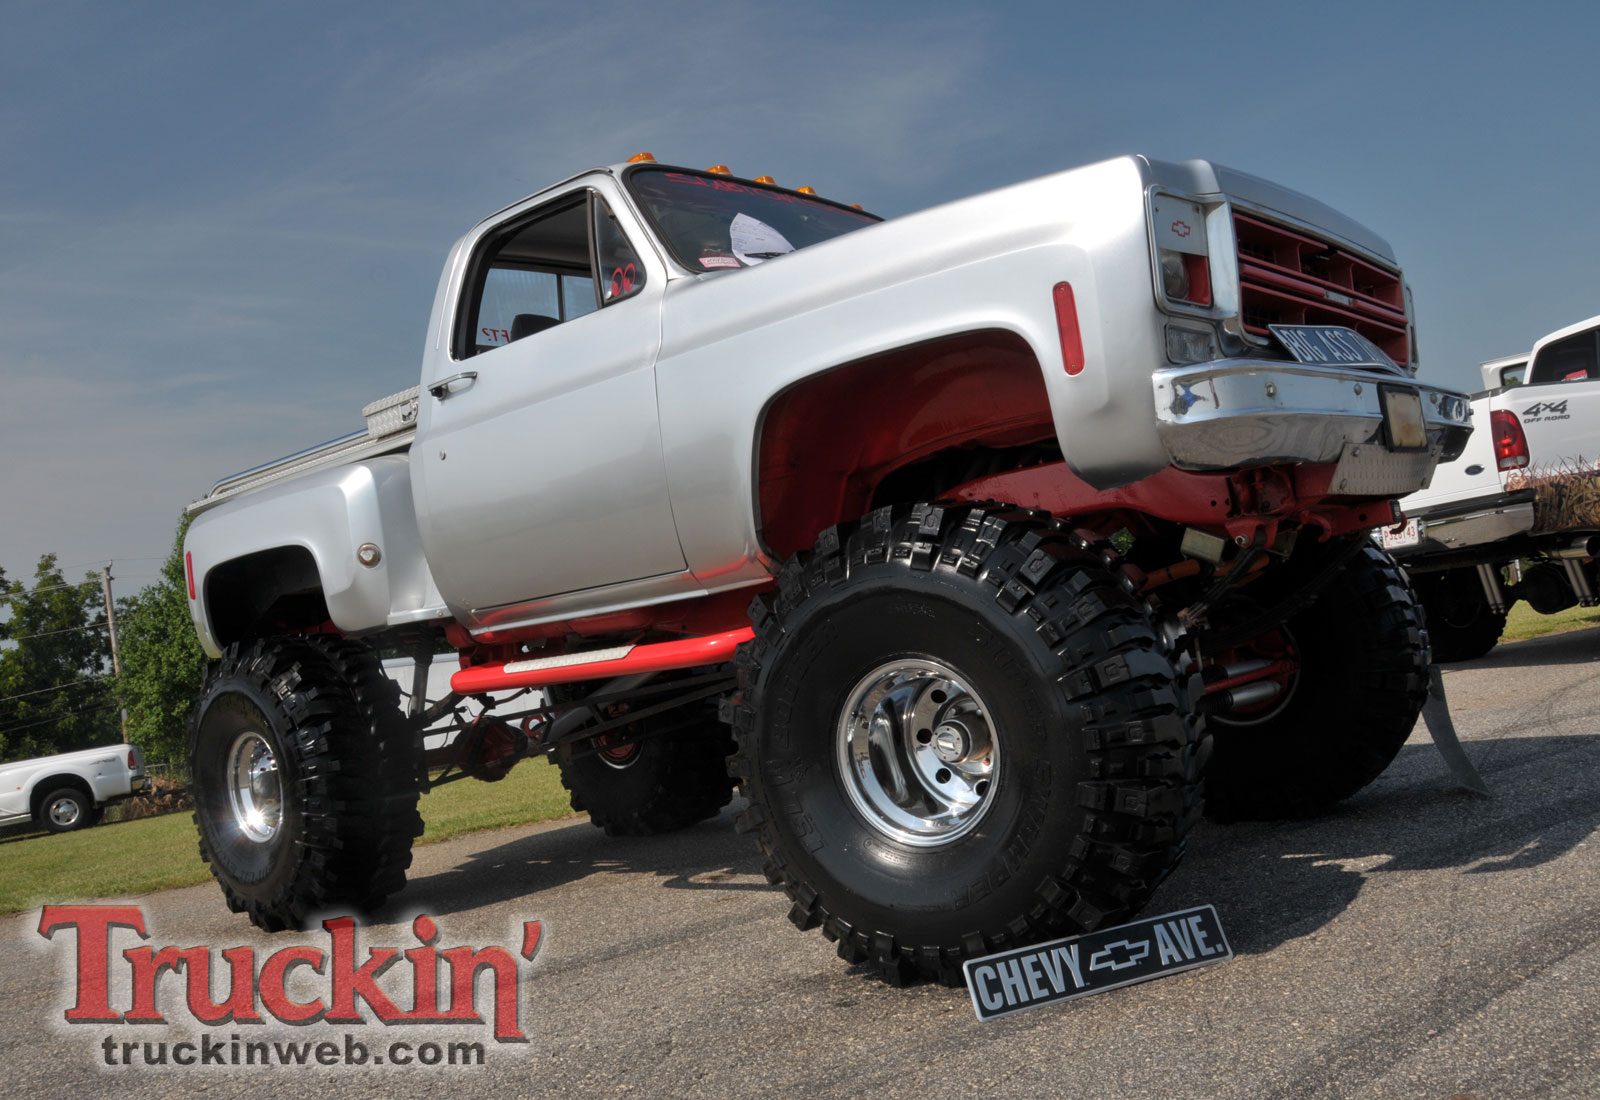 Lifted Chevy Truck Wallpaper Trucks web background cake 1600x1100